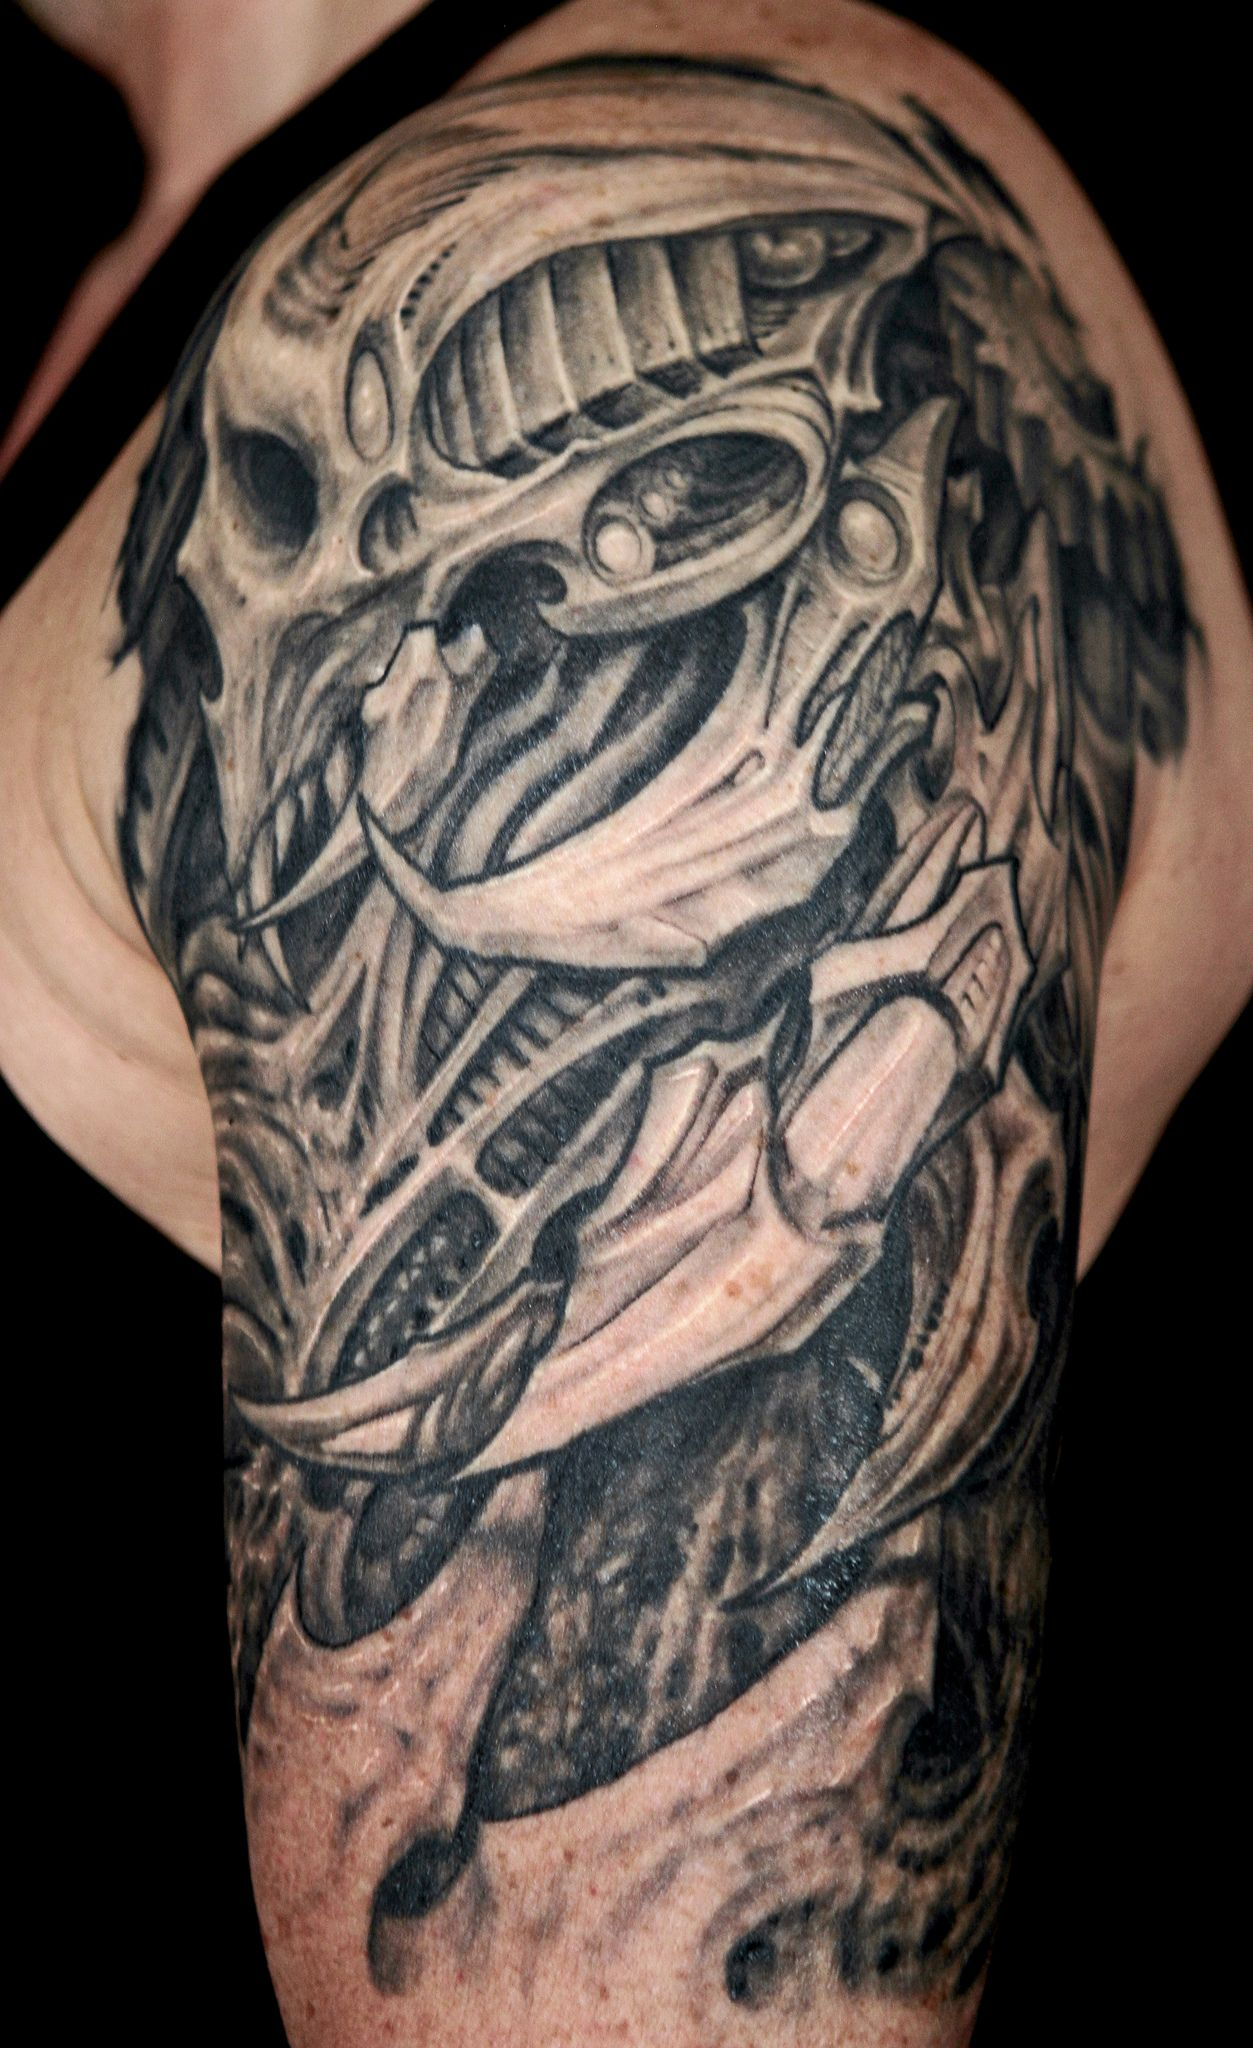 25 Amazing Biomechanical Tattoos Design Tattoo Design Ideas And Designs